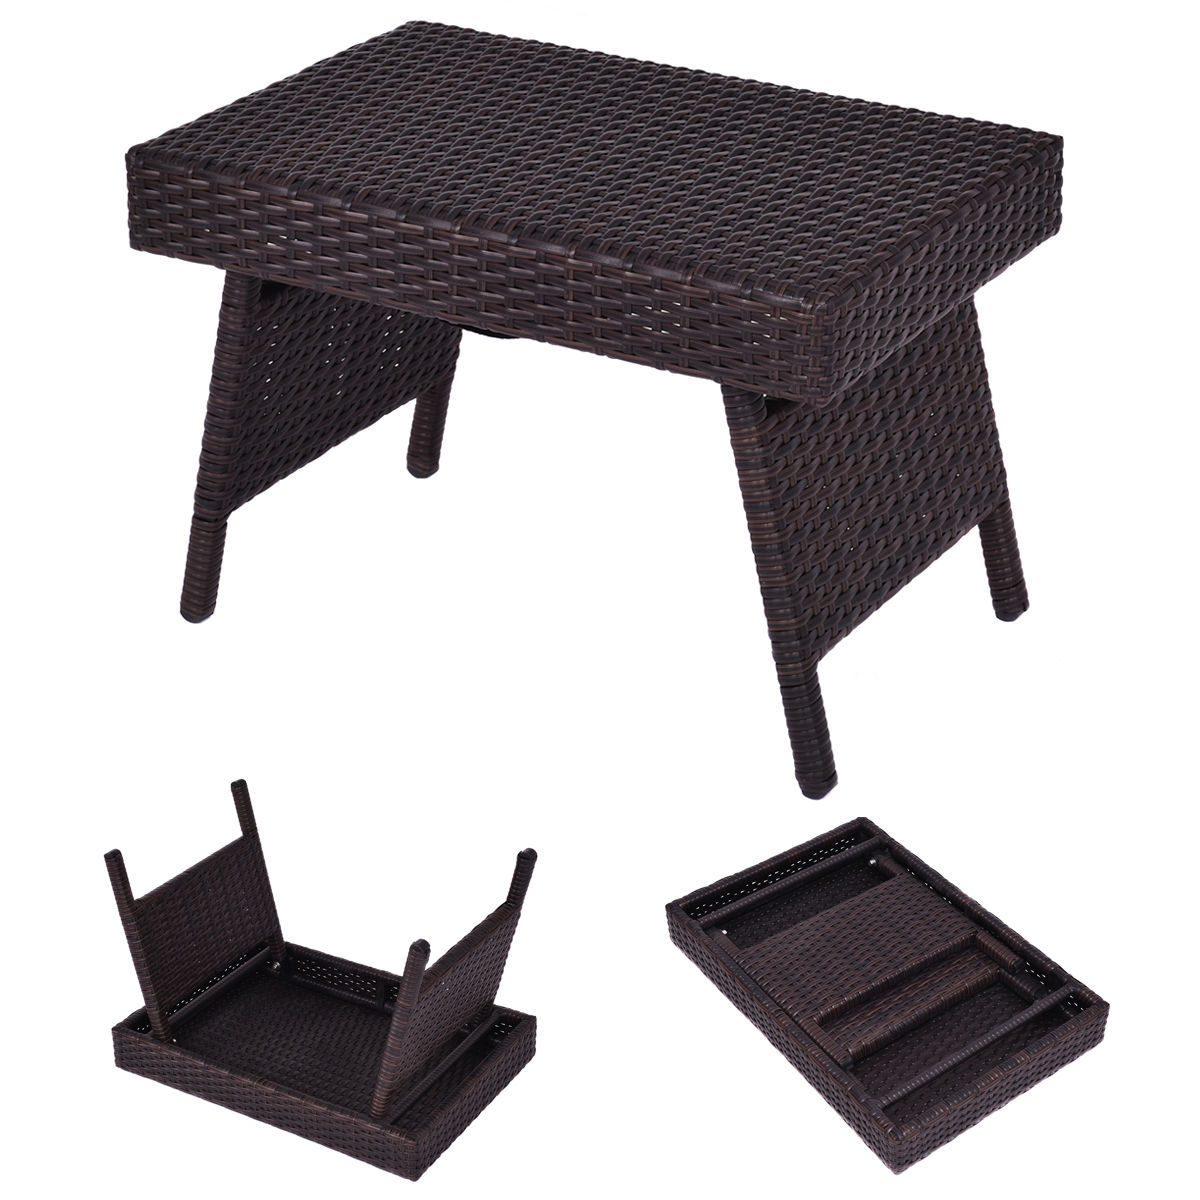 GHP Black Rattan Wicker Off White Cushion Sofa Ottoman & Coffee Table Furniture Set